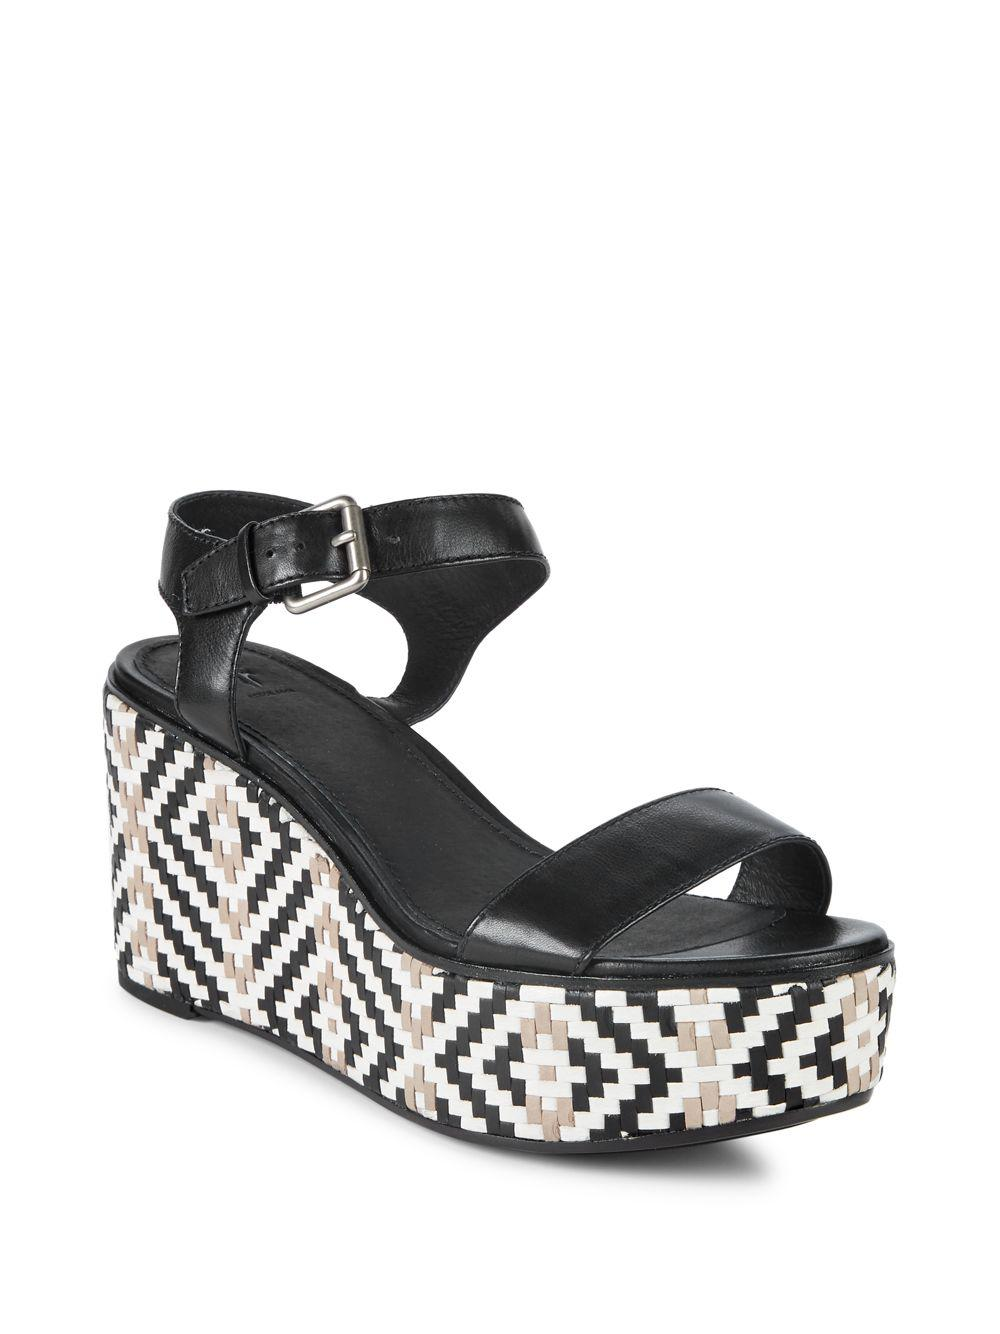 cb382fd2aee Frye Black Heather Woven Leather Wedge Sandals